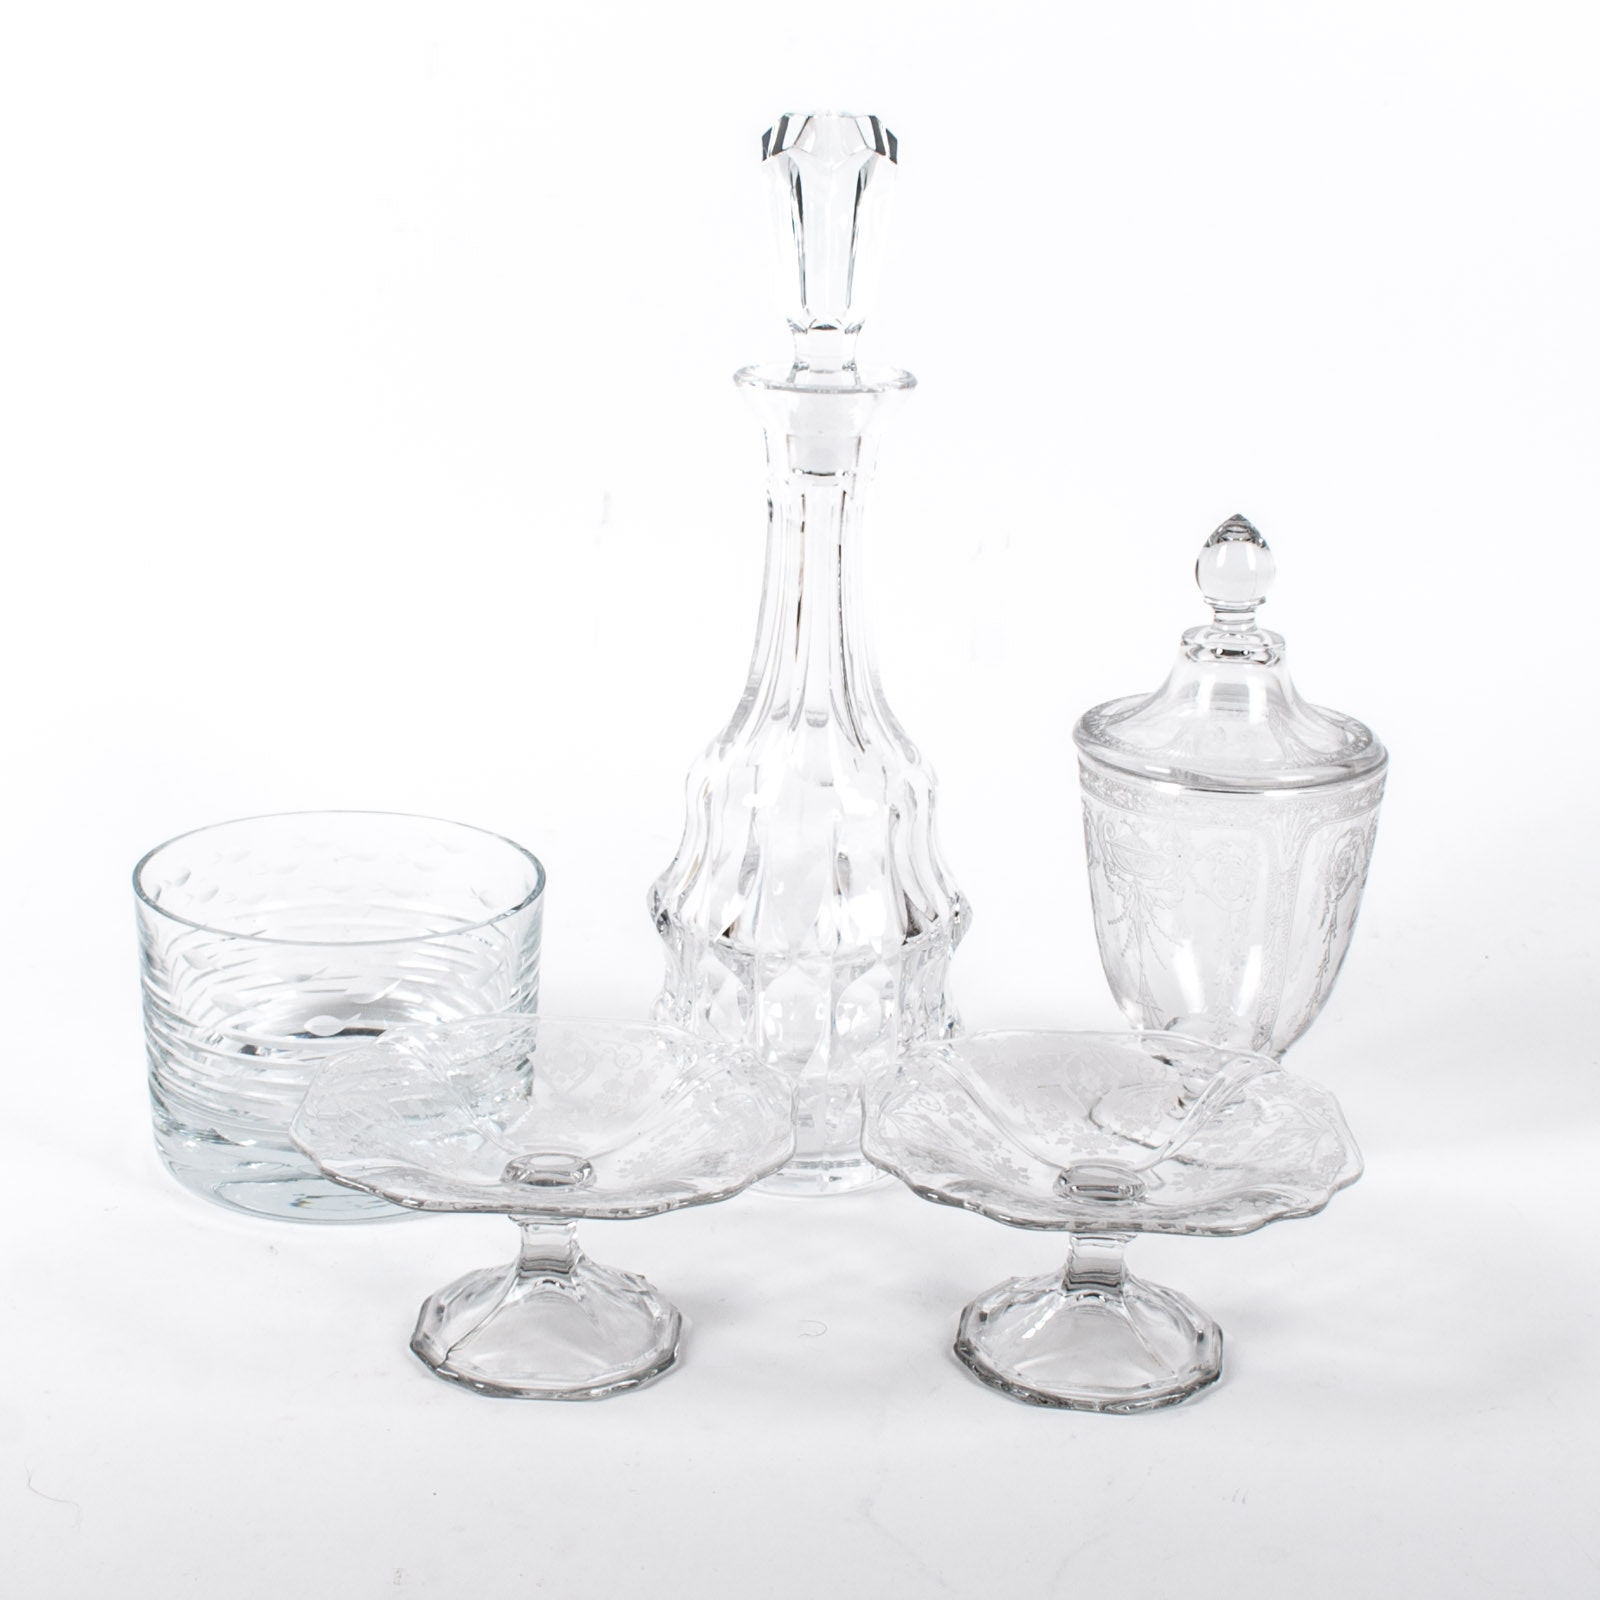 Krosno Glass Bowl and Assortment of Decorative Glass